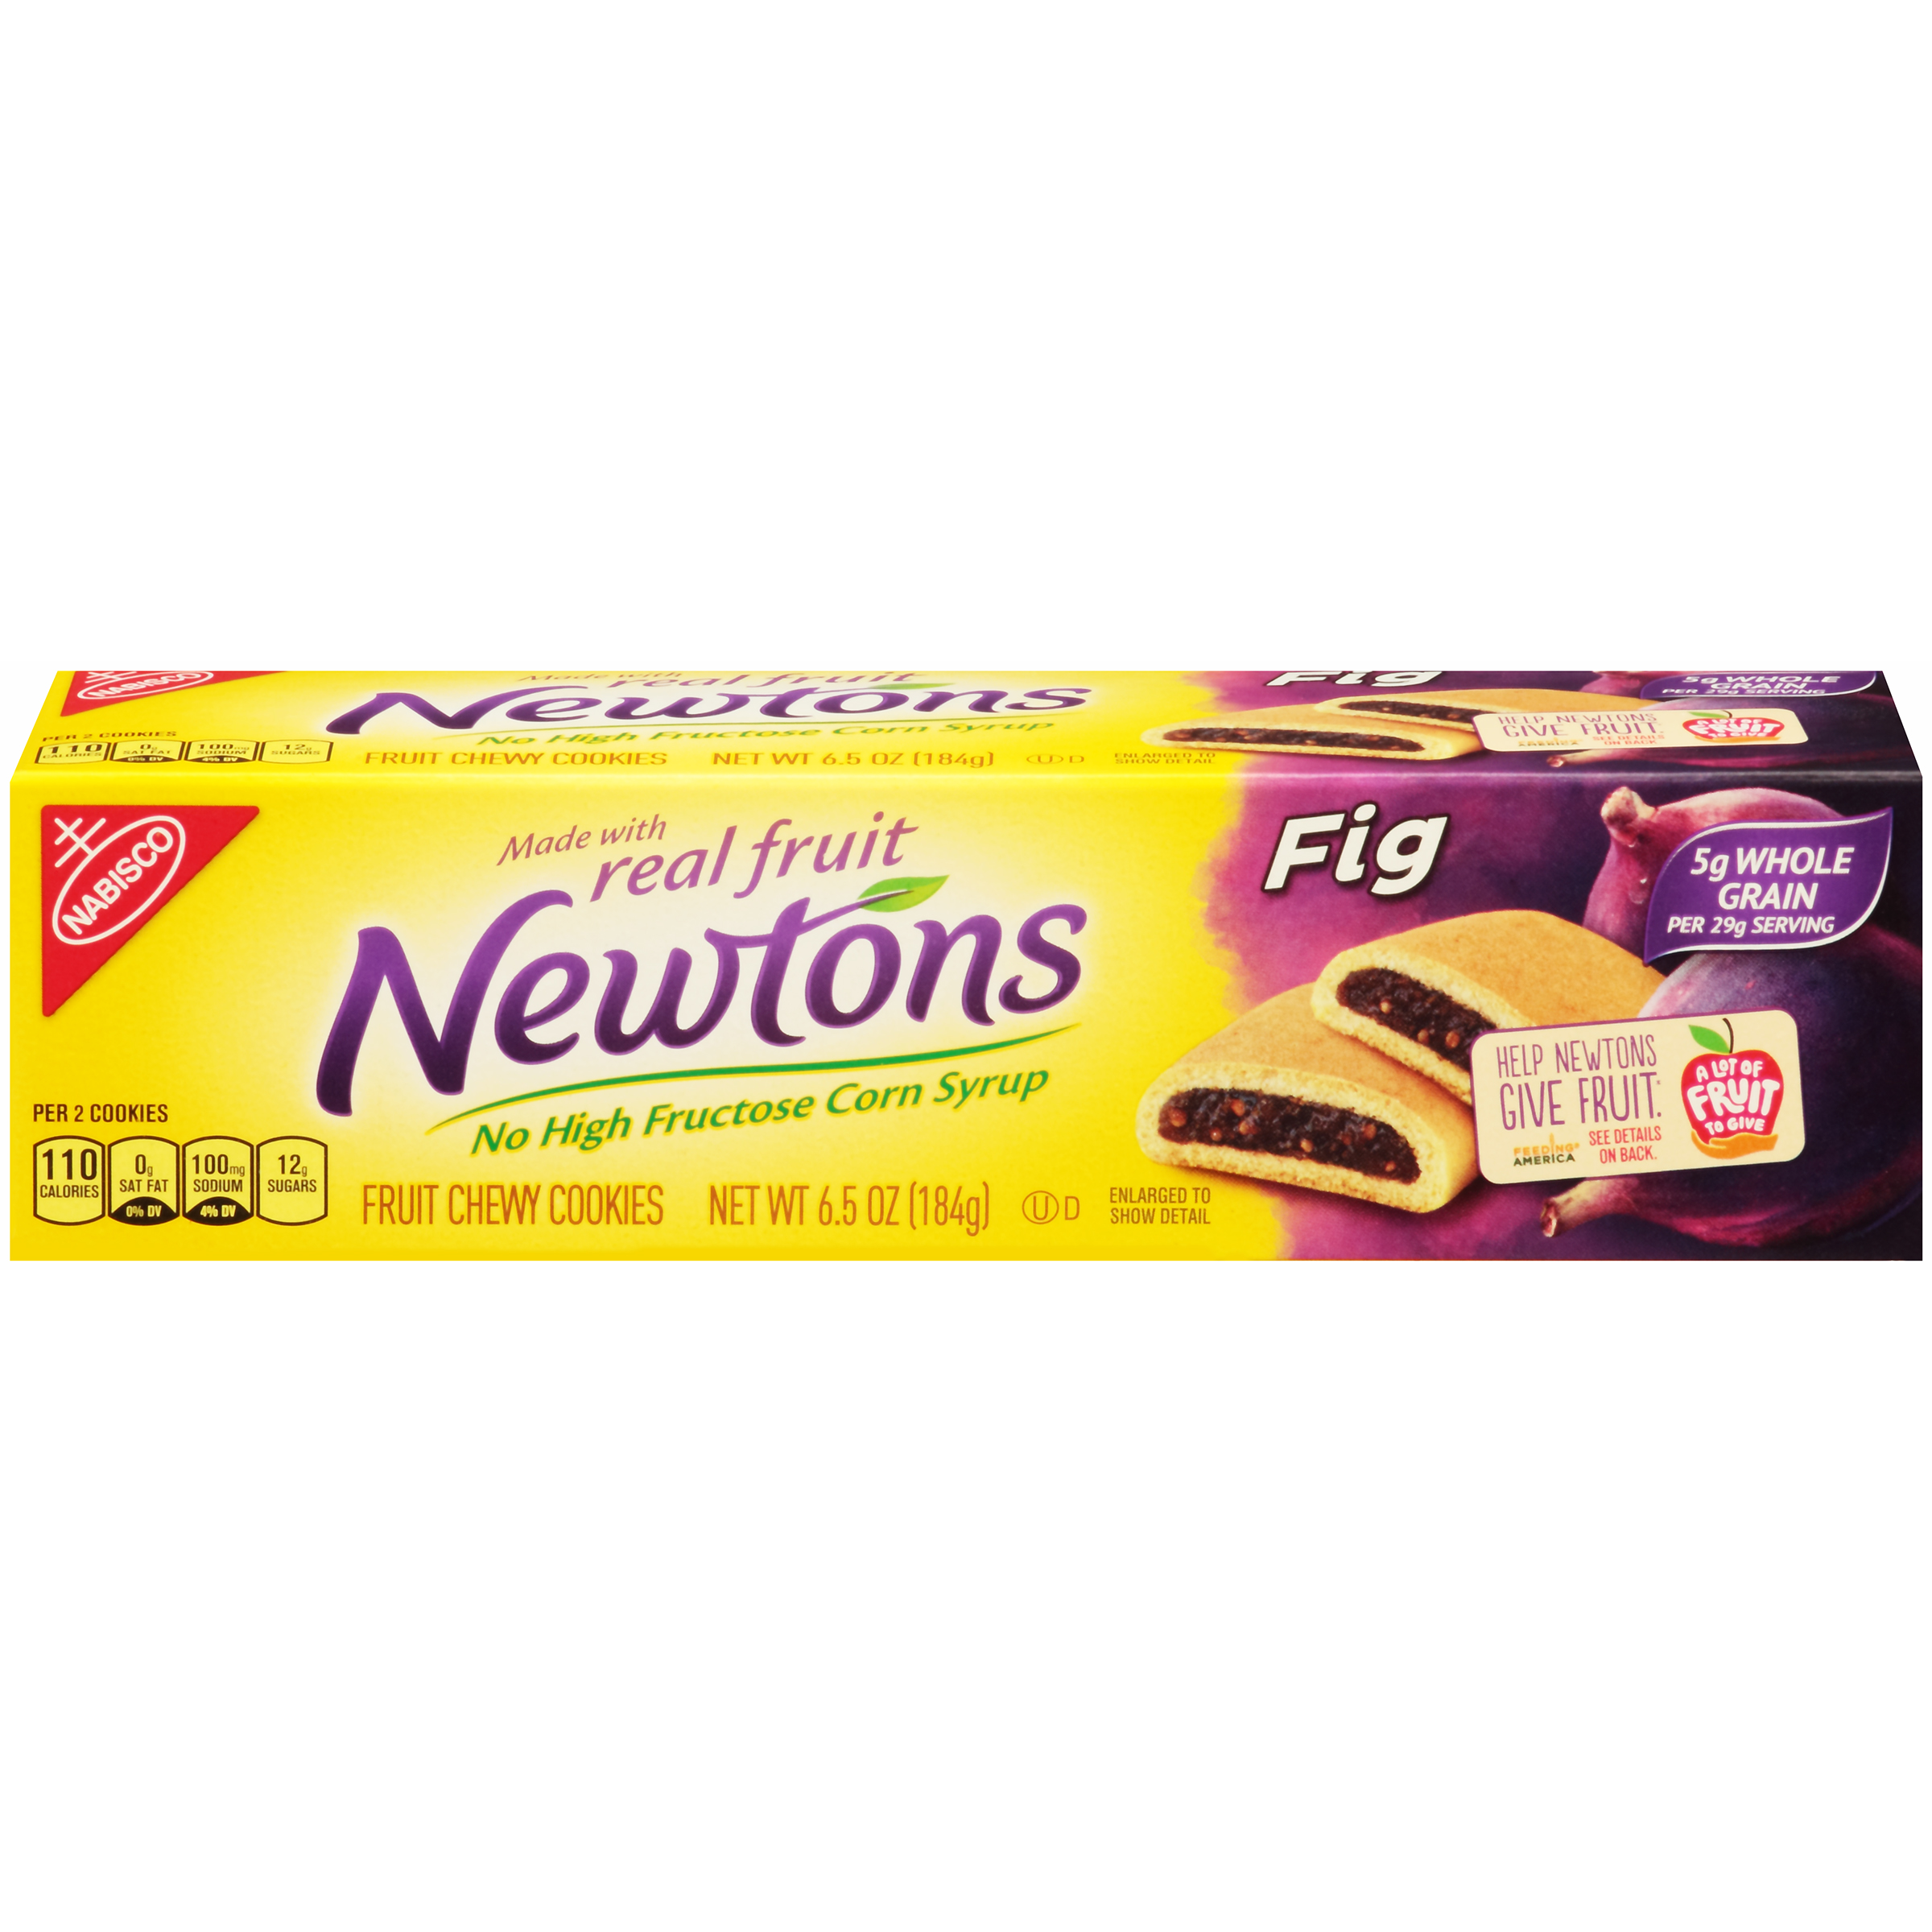 Newtons Fig Original Fruit Chewy Cookies, 6.5 oz